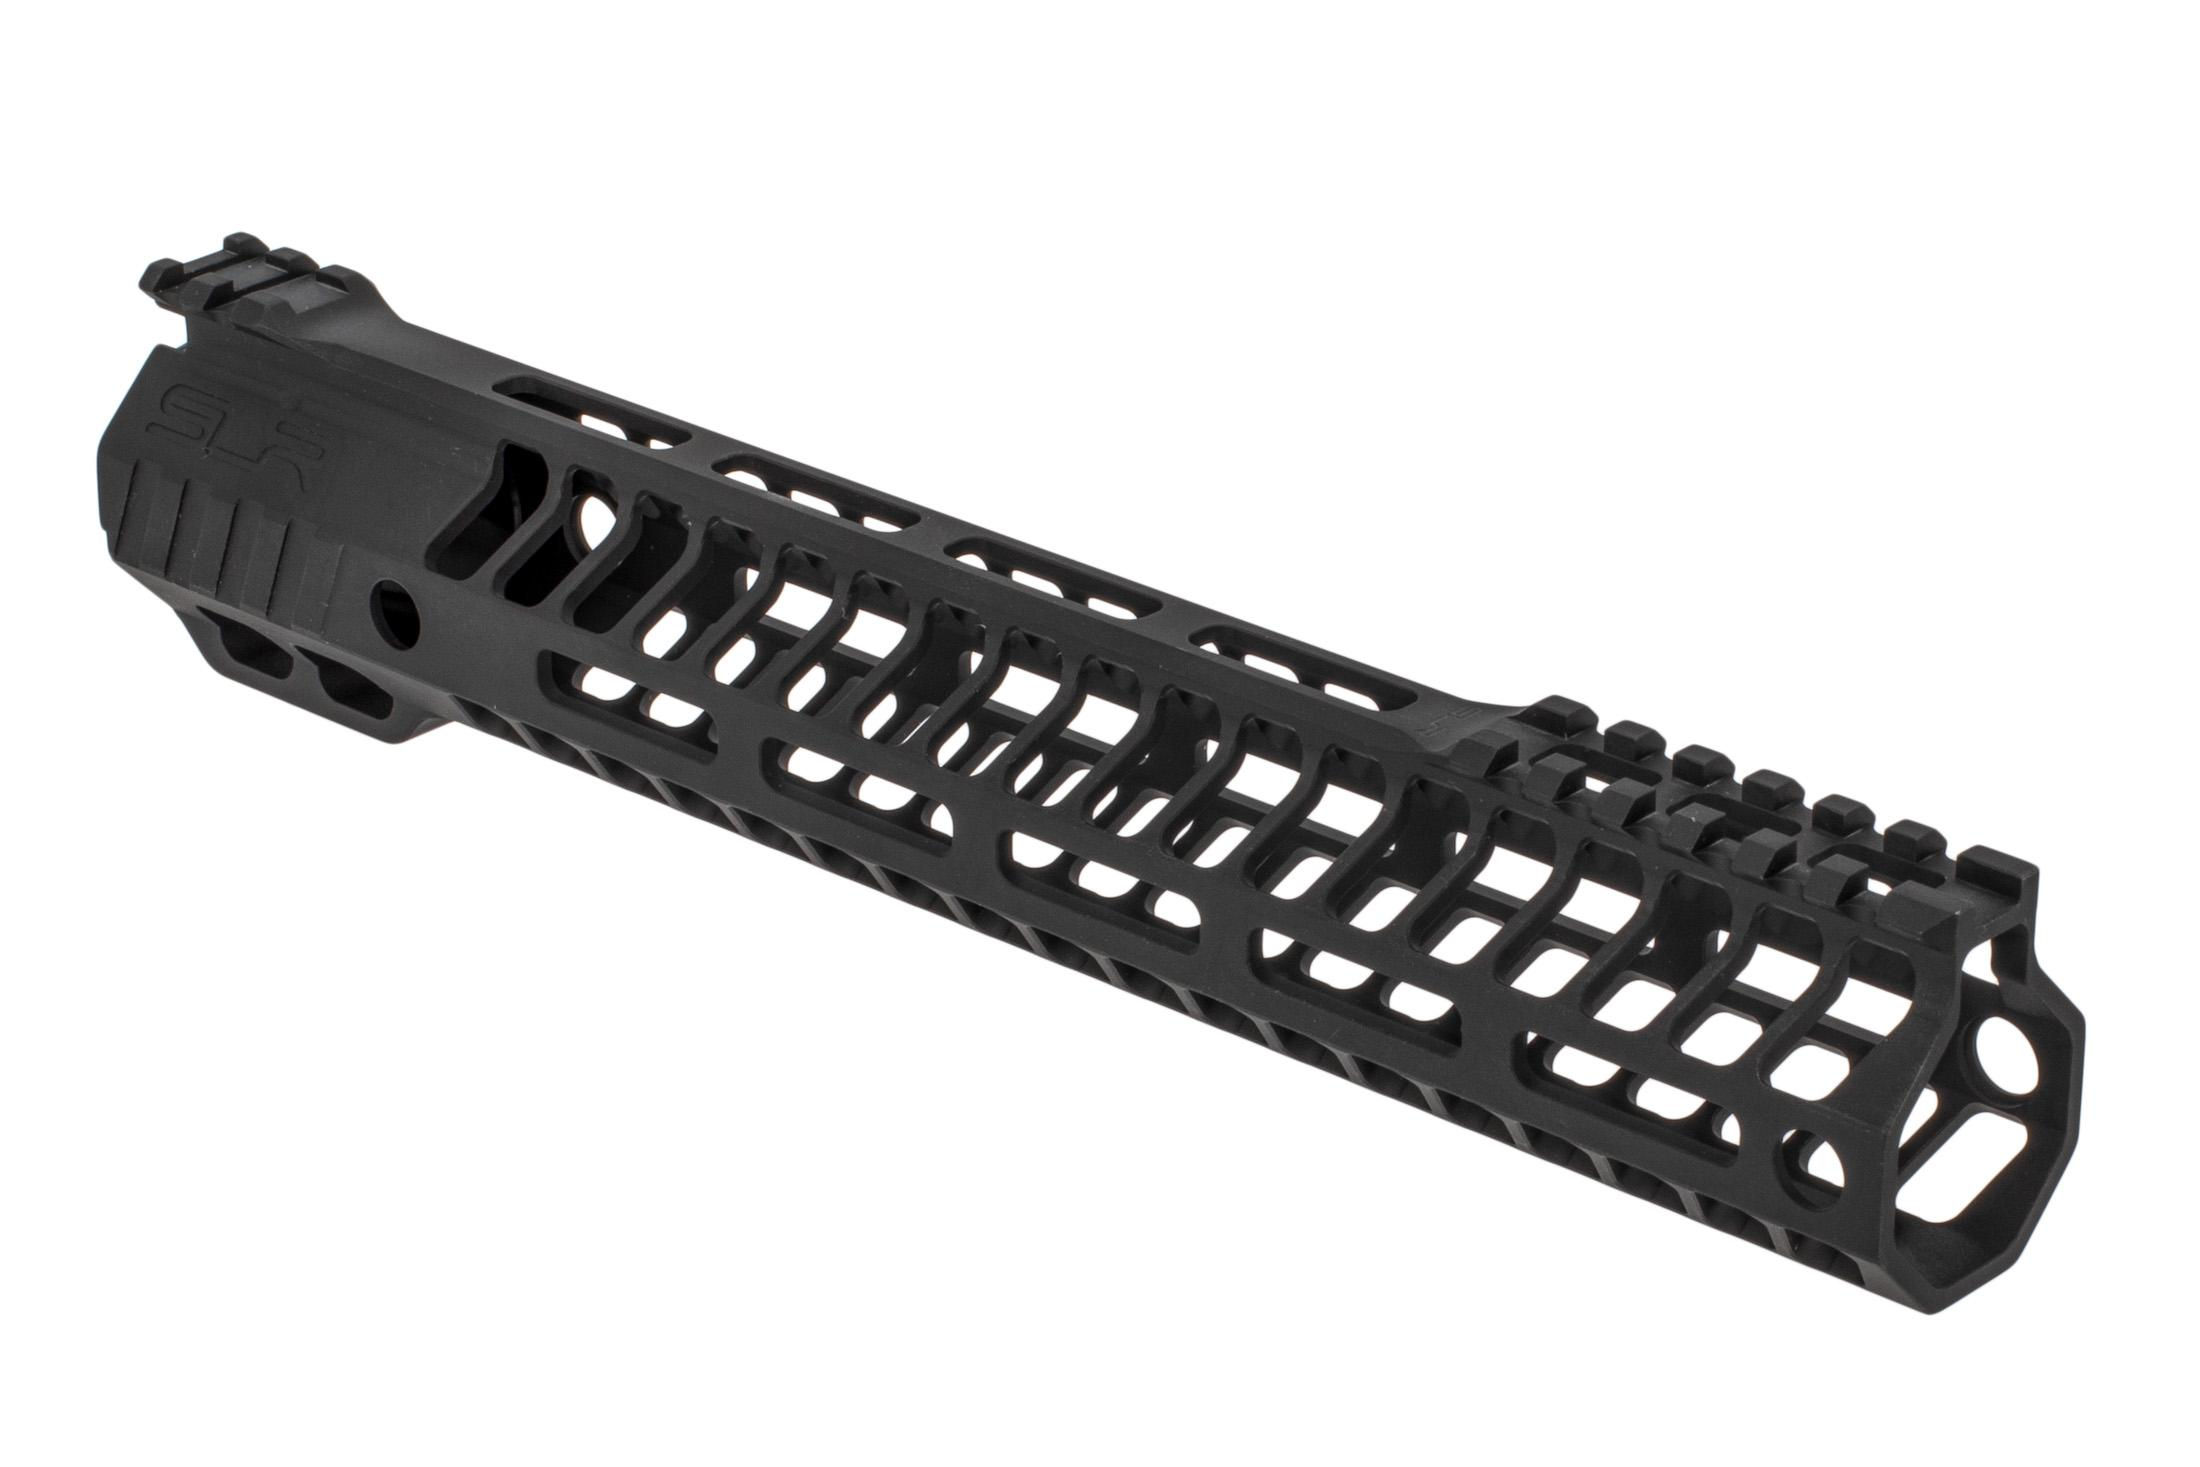 SLR Rifleworks HELIX series 11.7 M-LOK rail for the AR-15 with interrupted top rail with black anodized finish.